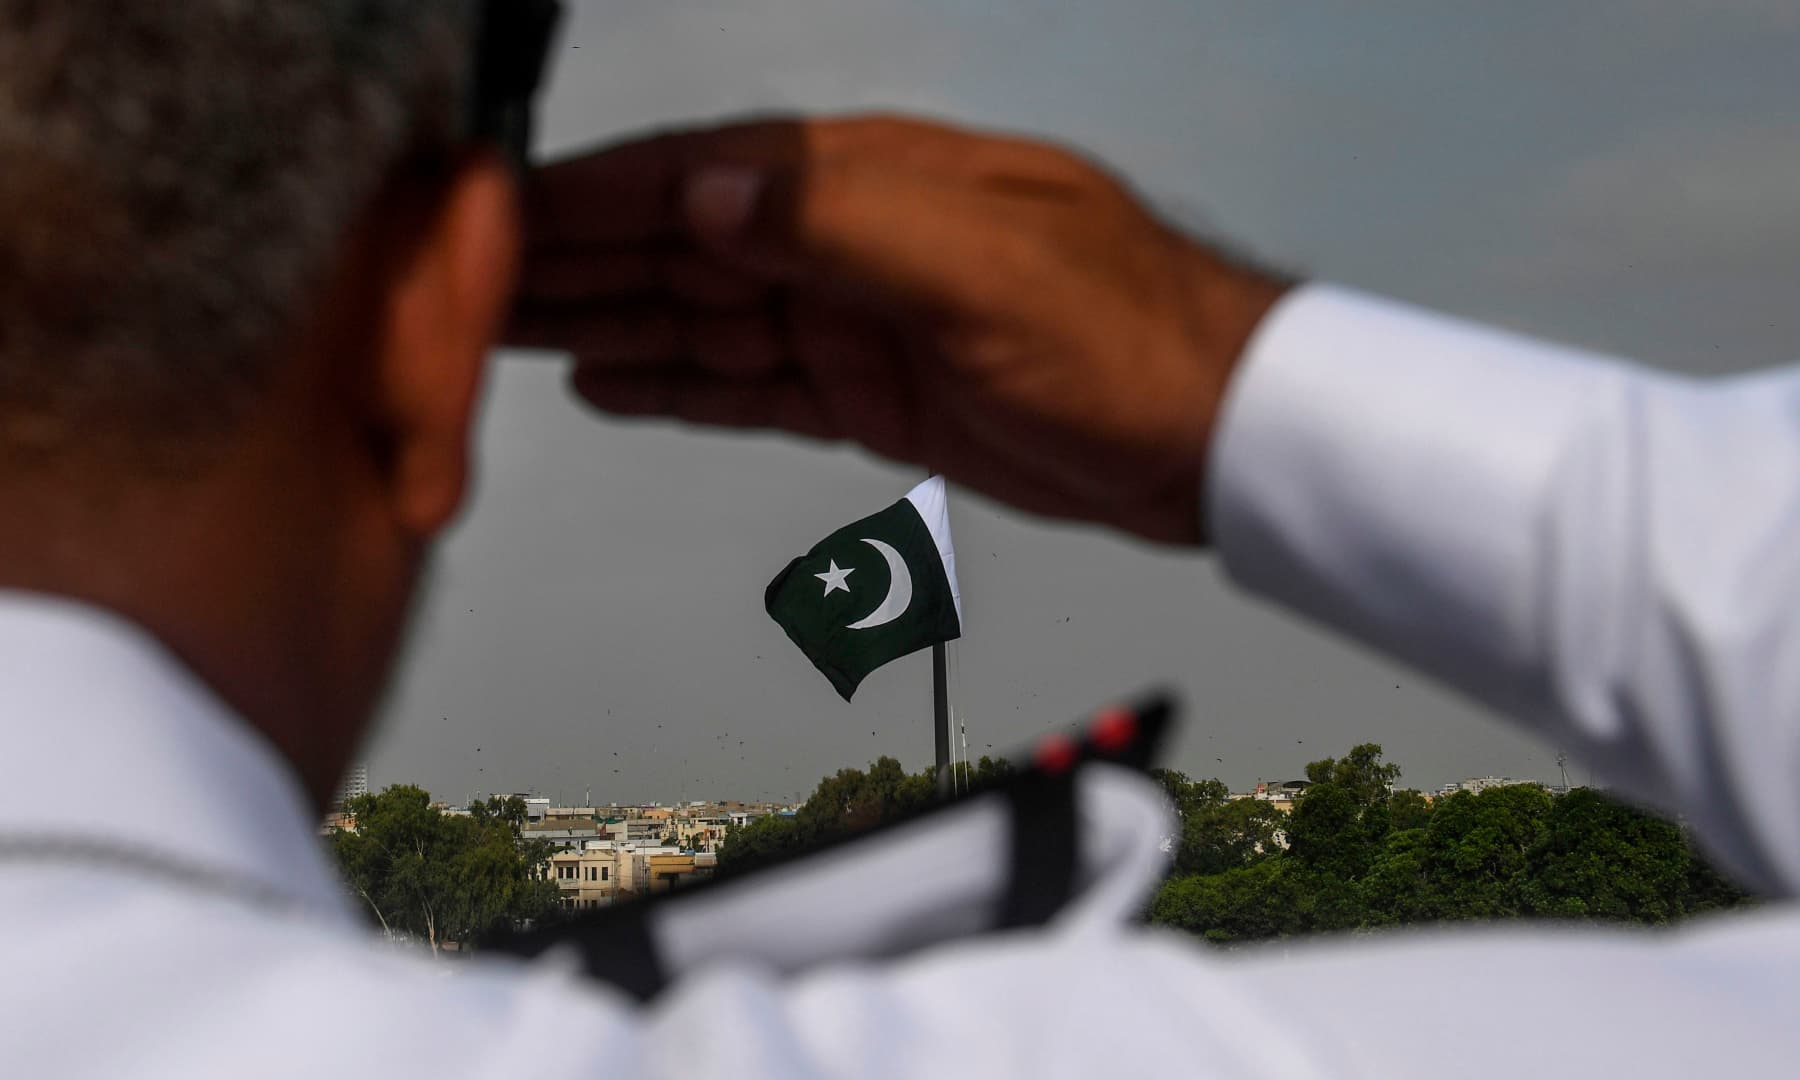 A Pakistan Navy officer salutes at the mausoleum of founder Muhammad Ali Jinnah during the Independence Day celebrations in Karachi on August 14. — AFP